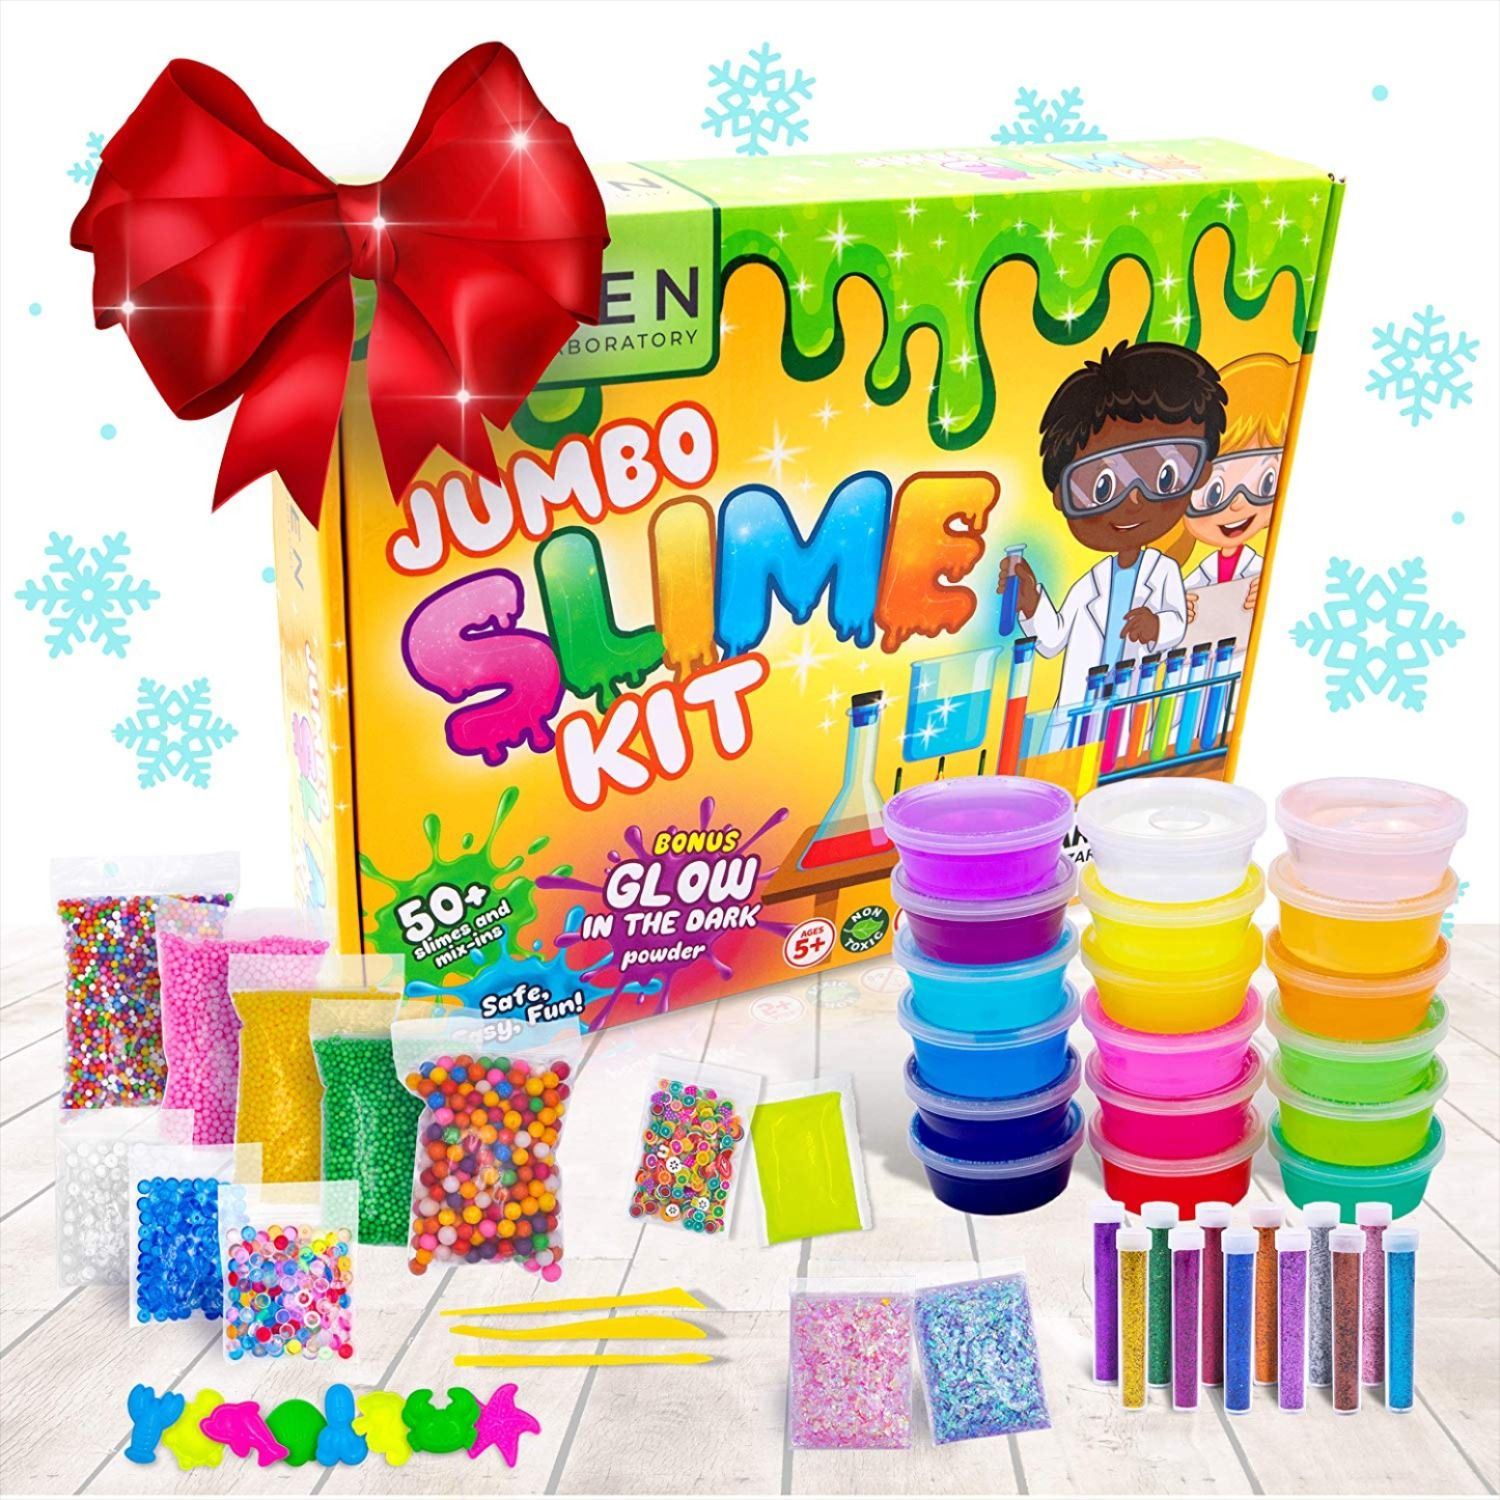 DIY Make Your Own Creative Slime Putty Kids Toy Christmas Gift Play Lab Kit A.21